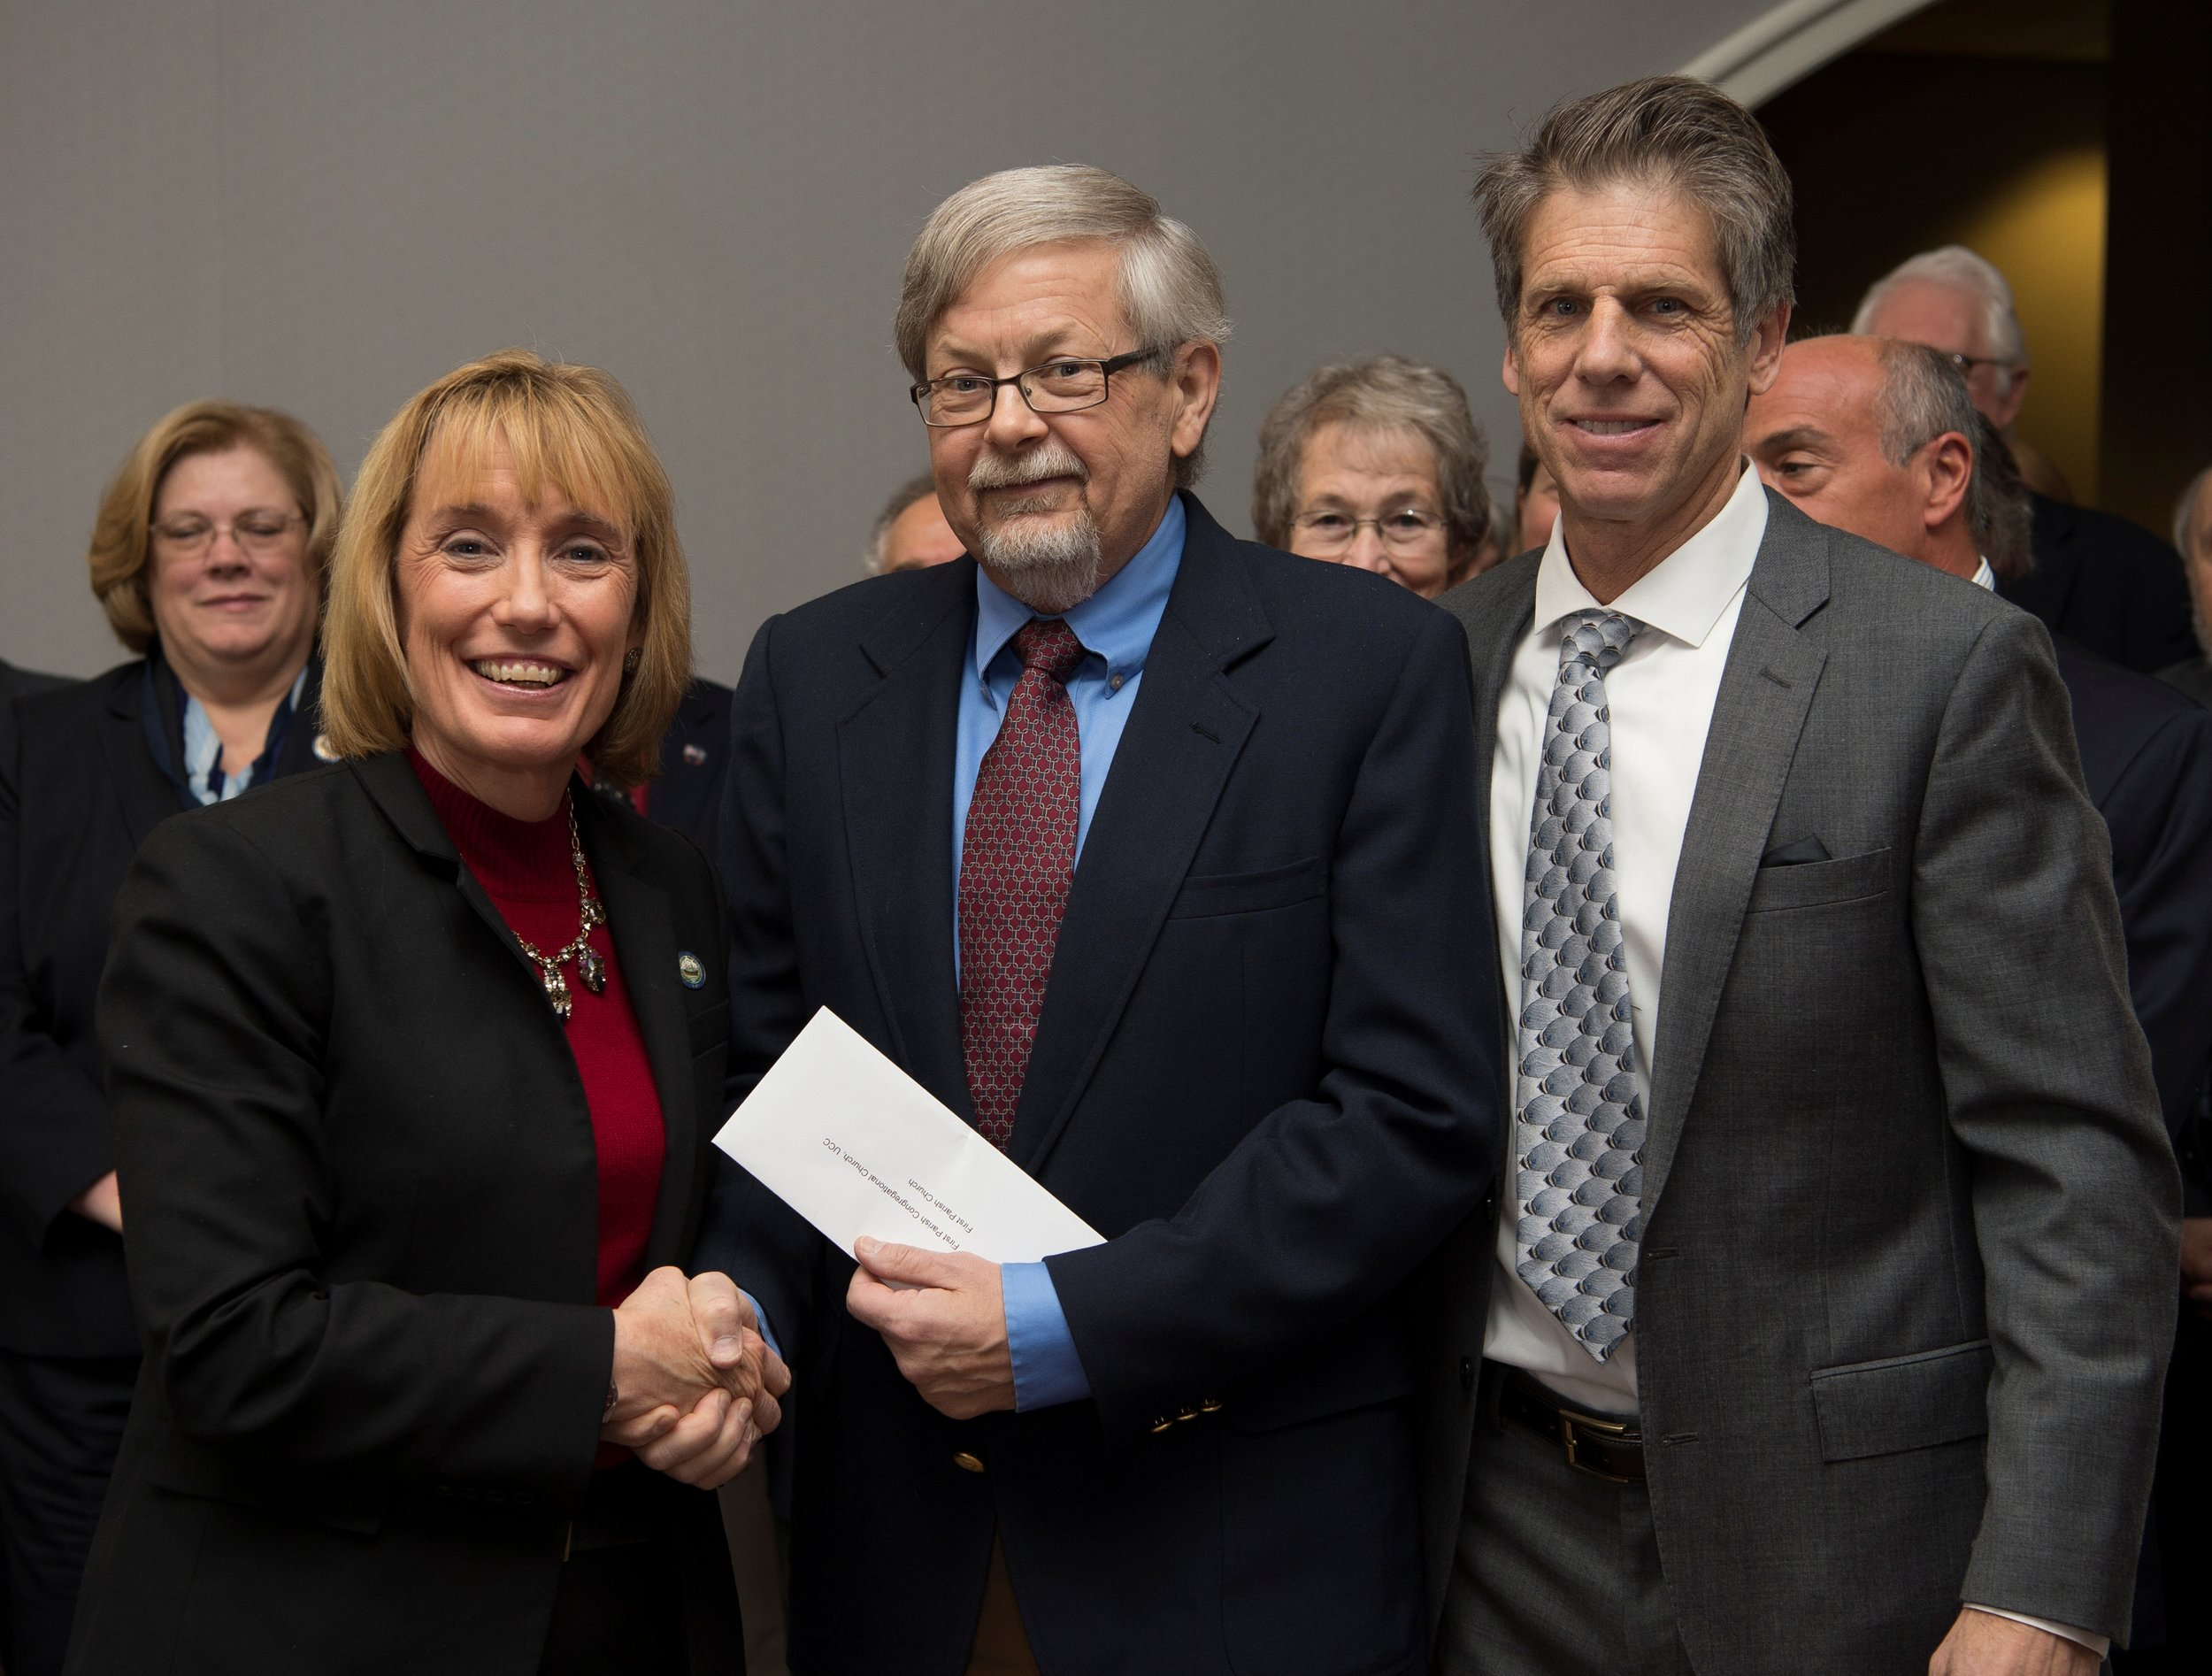 Governor Hassan and LCHIP Board Chair Doug Cole present the $59,000 grant award to Paul Lindemann on behalf of First Parish Church.  (Photo credit: Perry Smith)